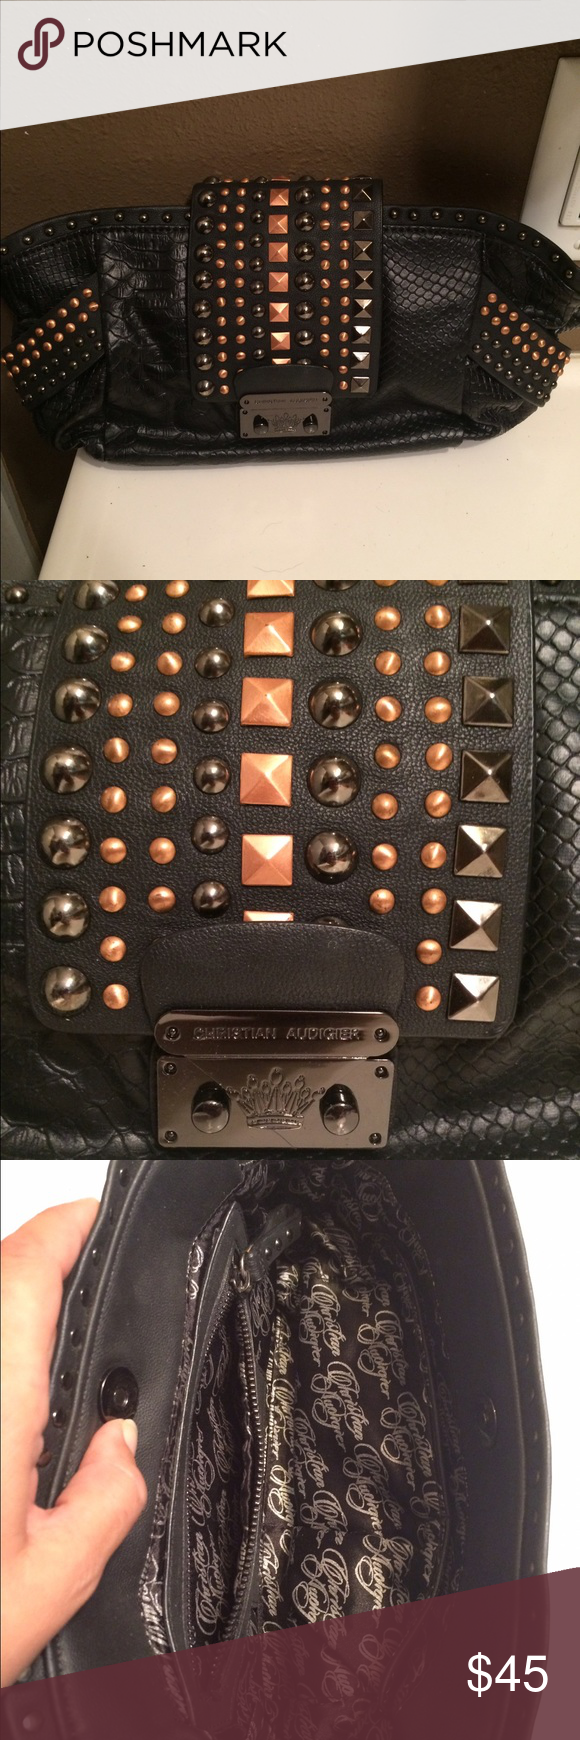 """Christian Audigier Studded Clutch Purse Super cute clutch only used once! Perfect condition. About 13"""" across and 6"""" in height. Christian Audigier Bags Clutches & Wristlets"""